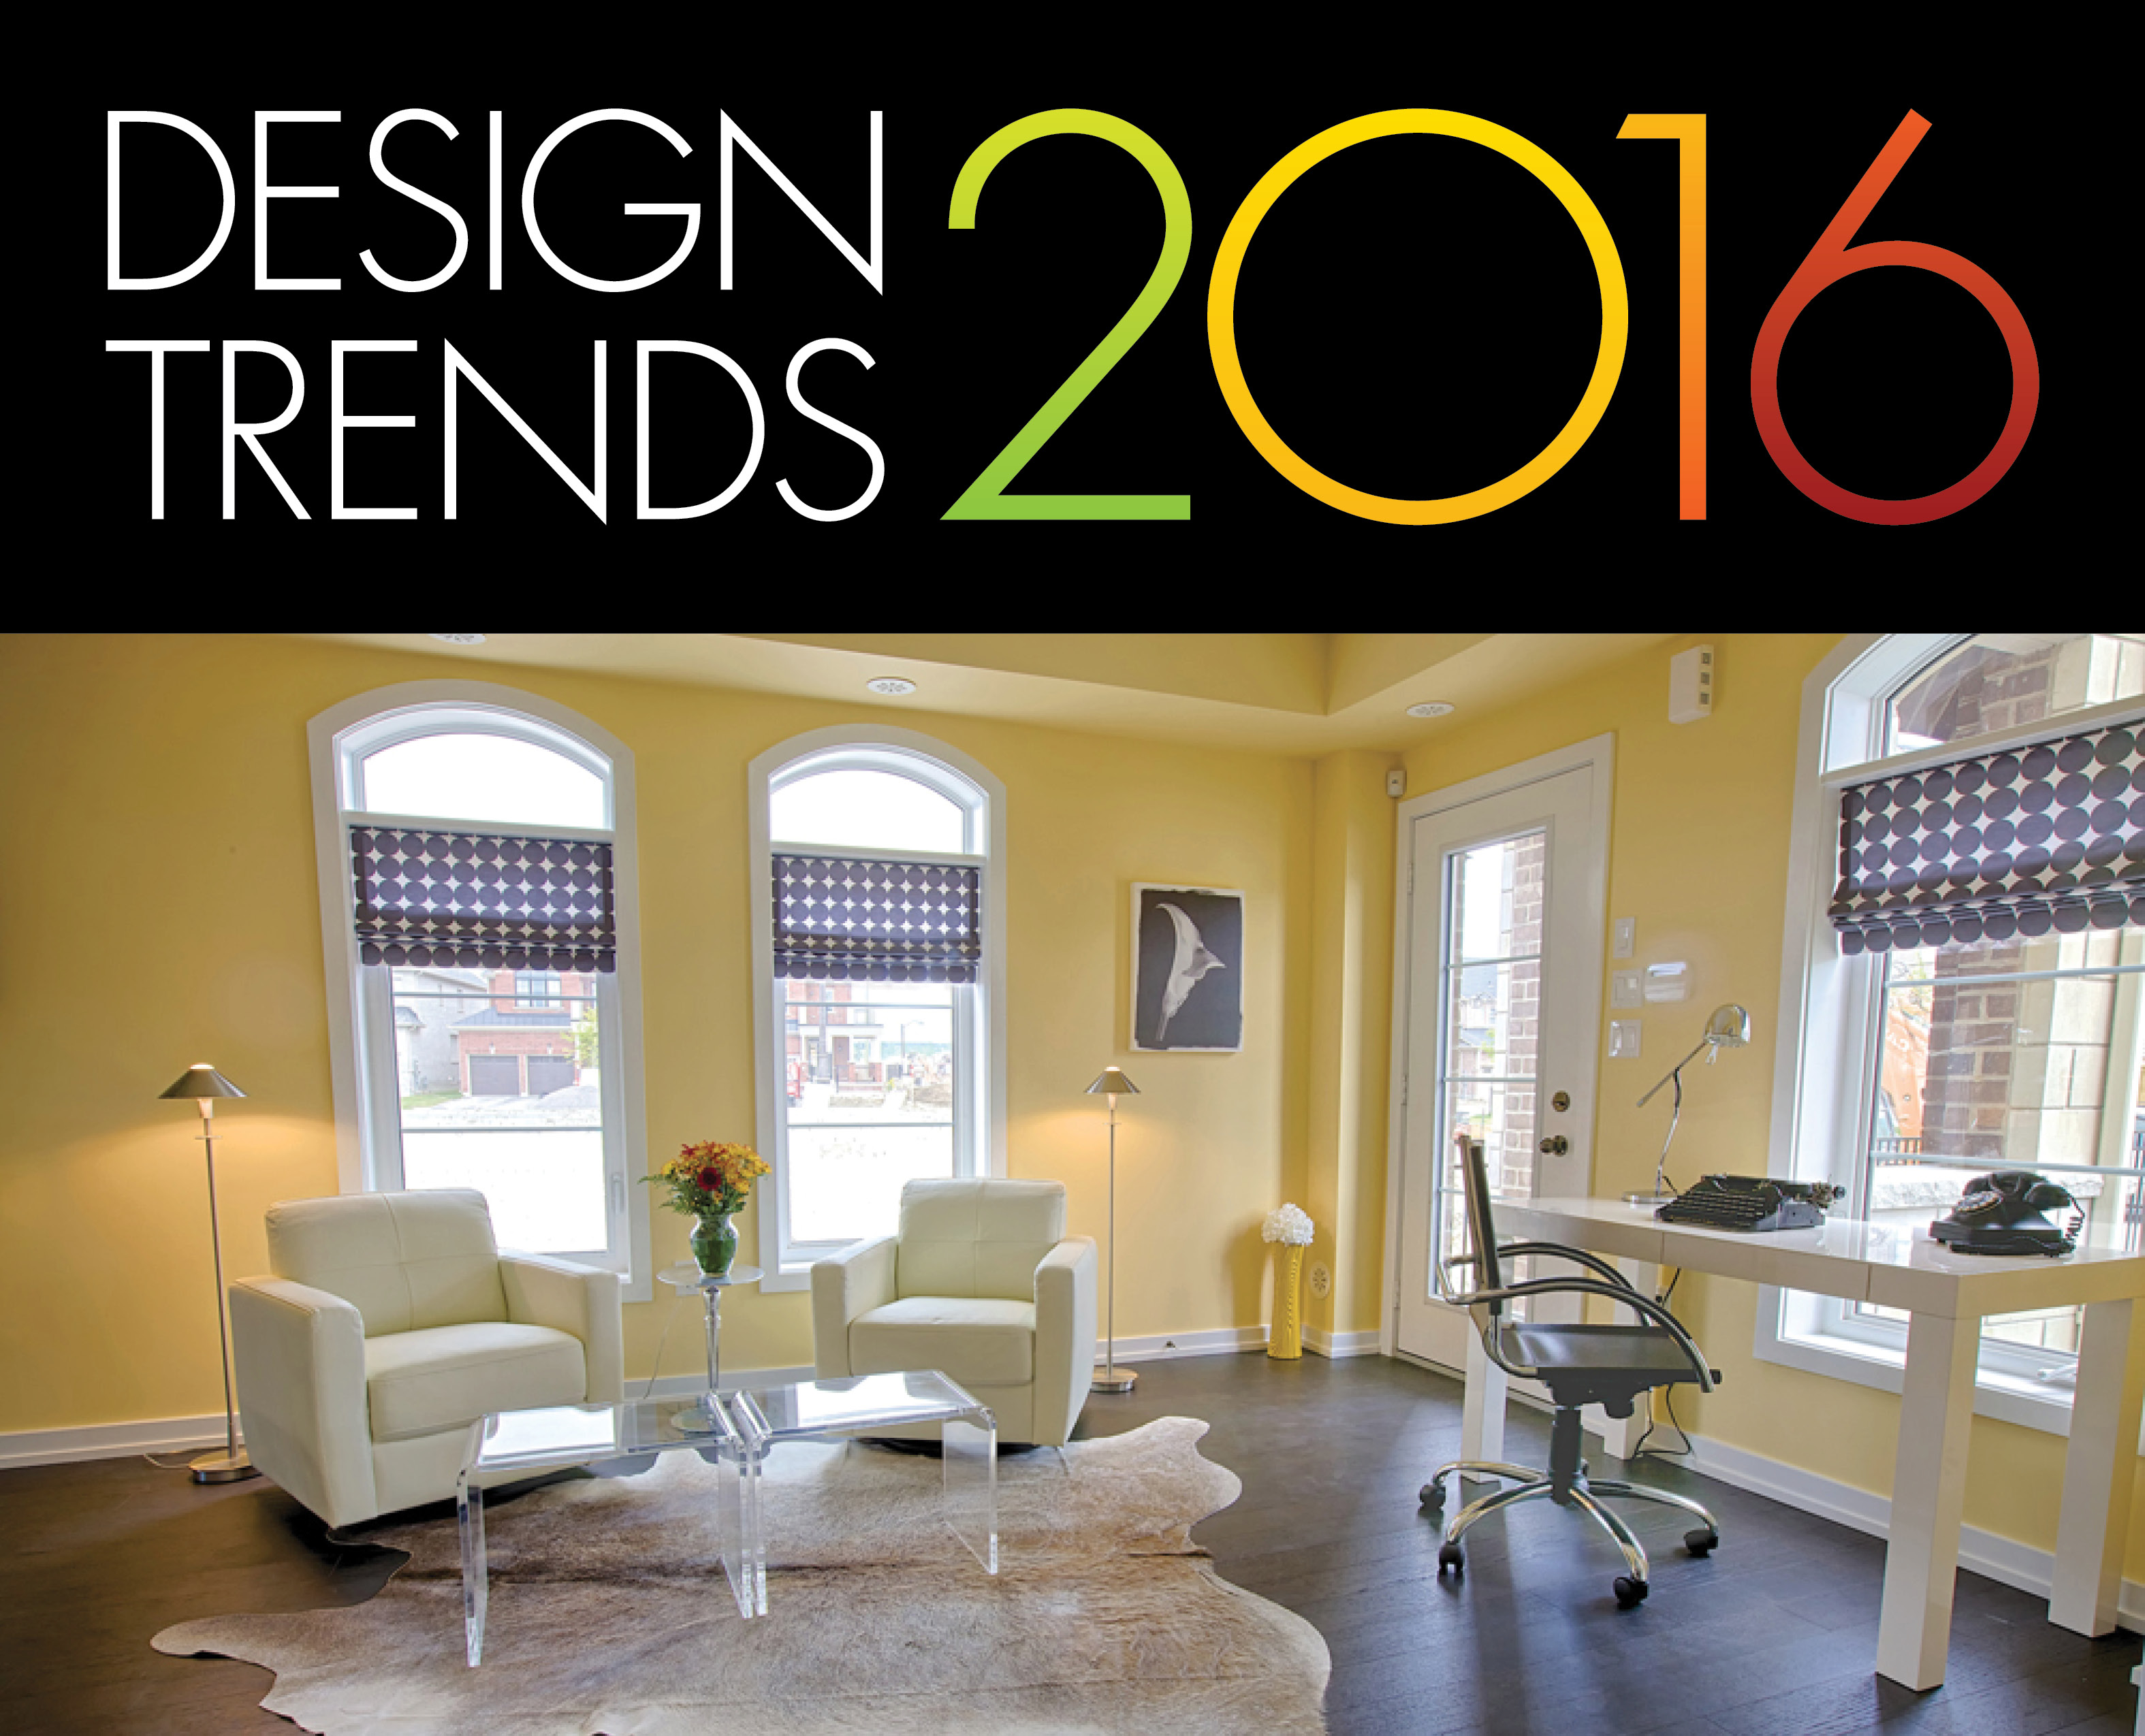 six home décor trends for 2016 - geranium blog